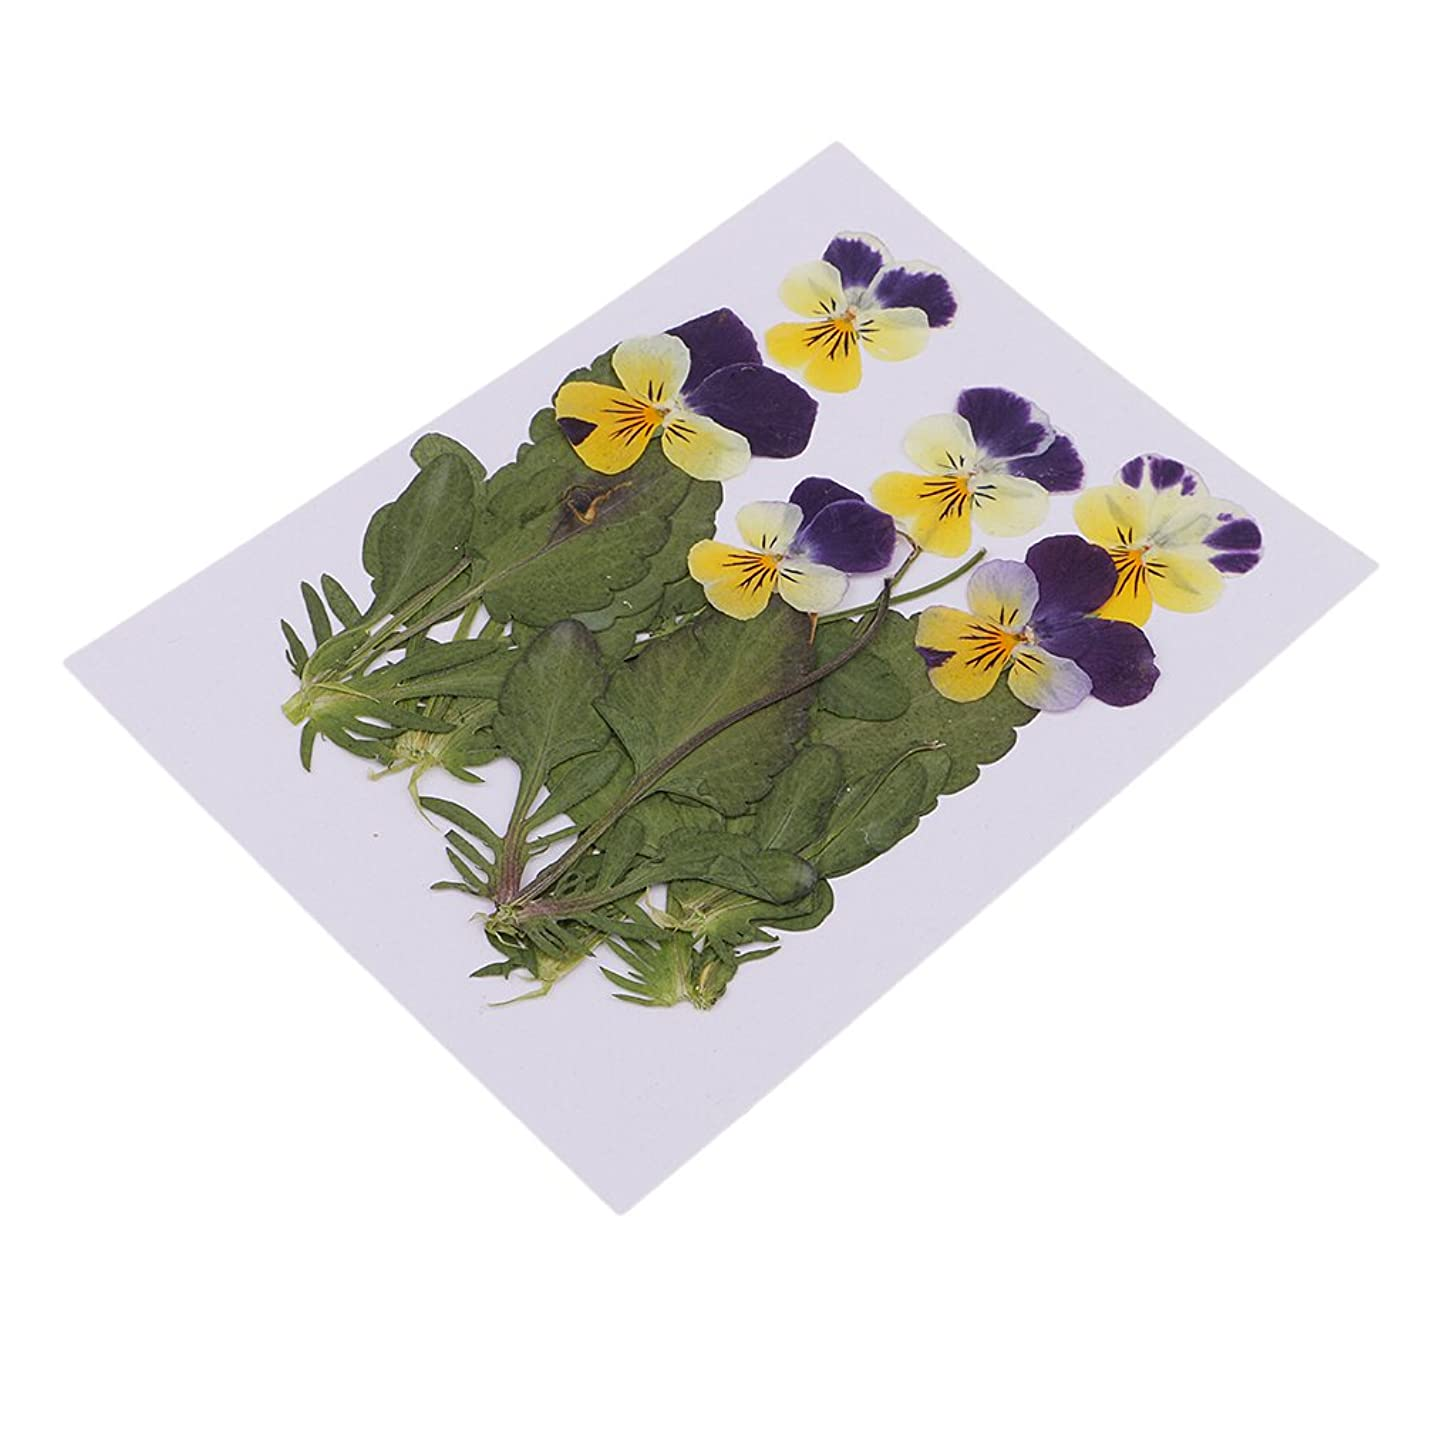 Homyl 6 Pieces Beautiful Real Pressed Pansy Flower Dried Flowers Leaves for Art Craft Scrapbooking Resin Jewelry Making Phone Case Decorating DIY Materials